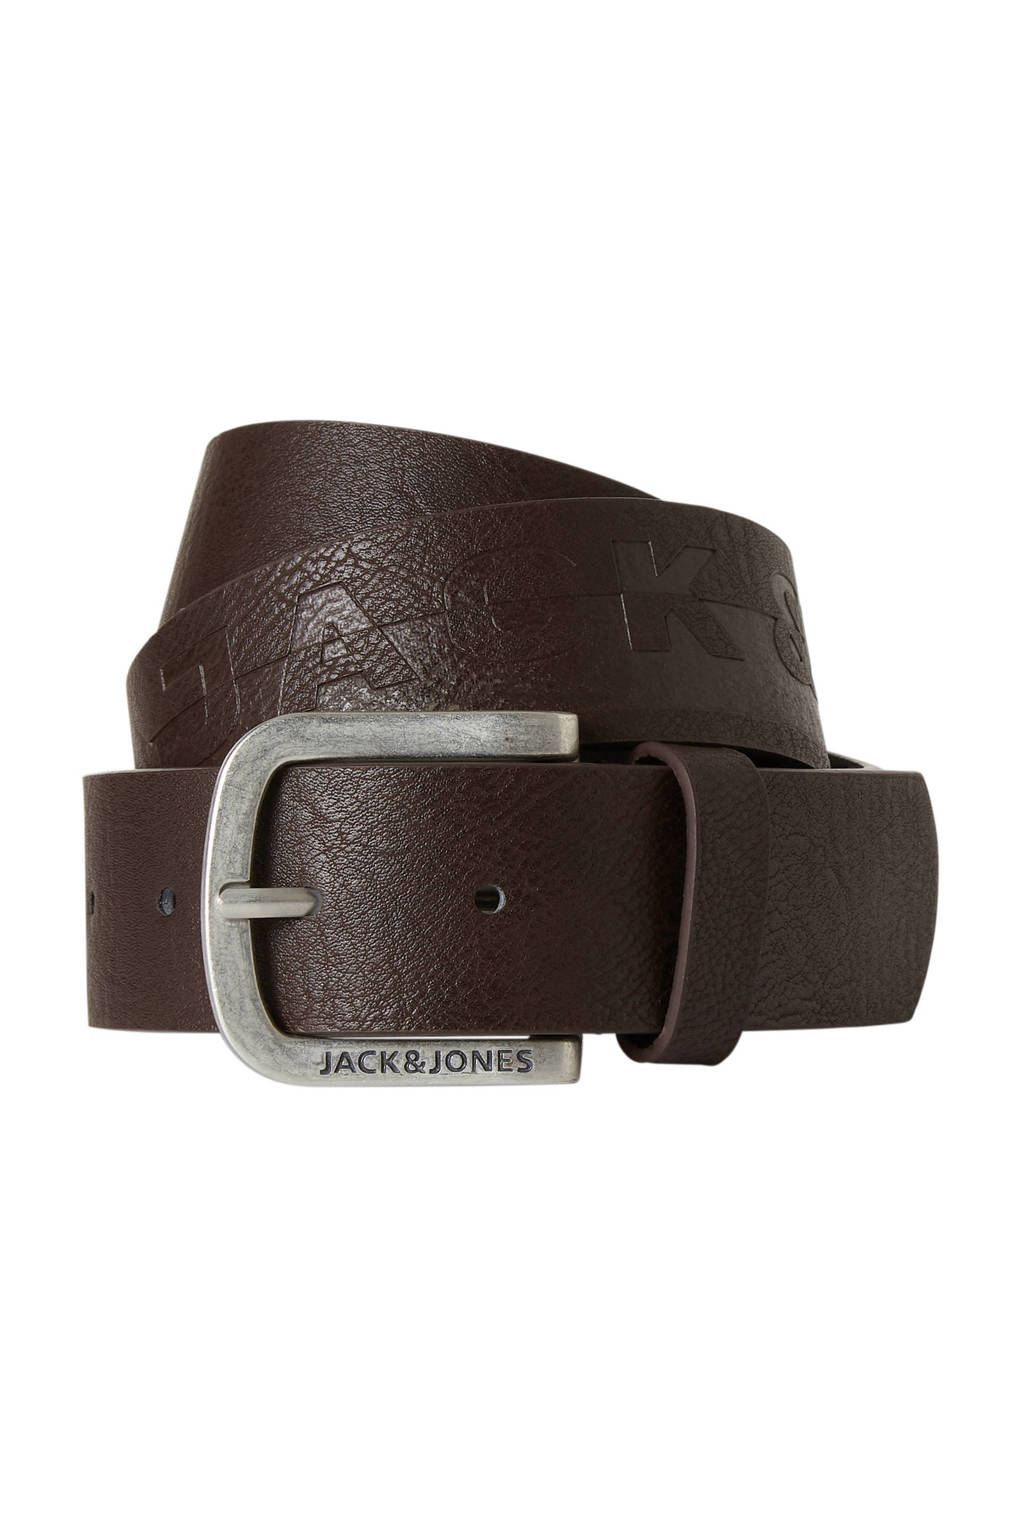 JACK & JONES leren riem, Black Coffee